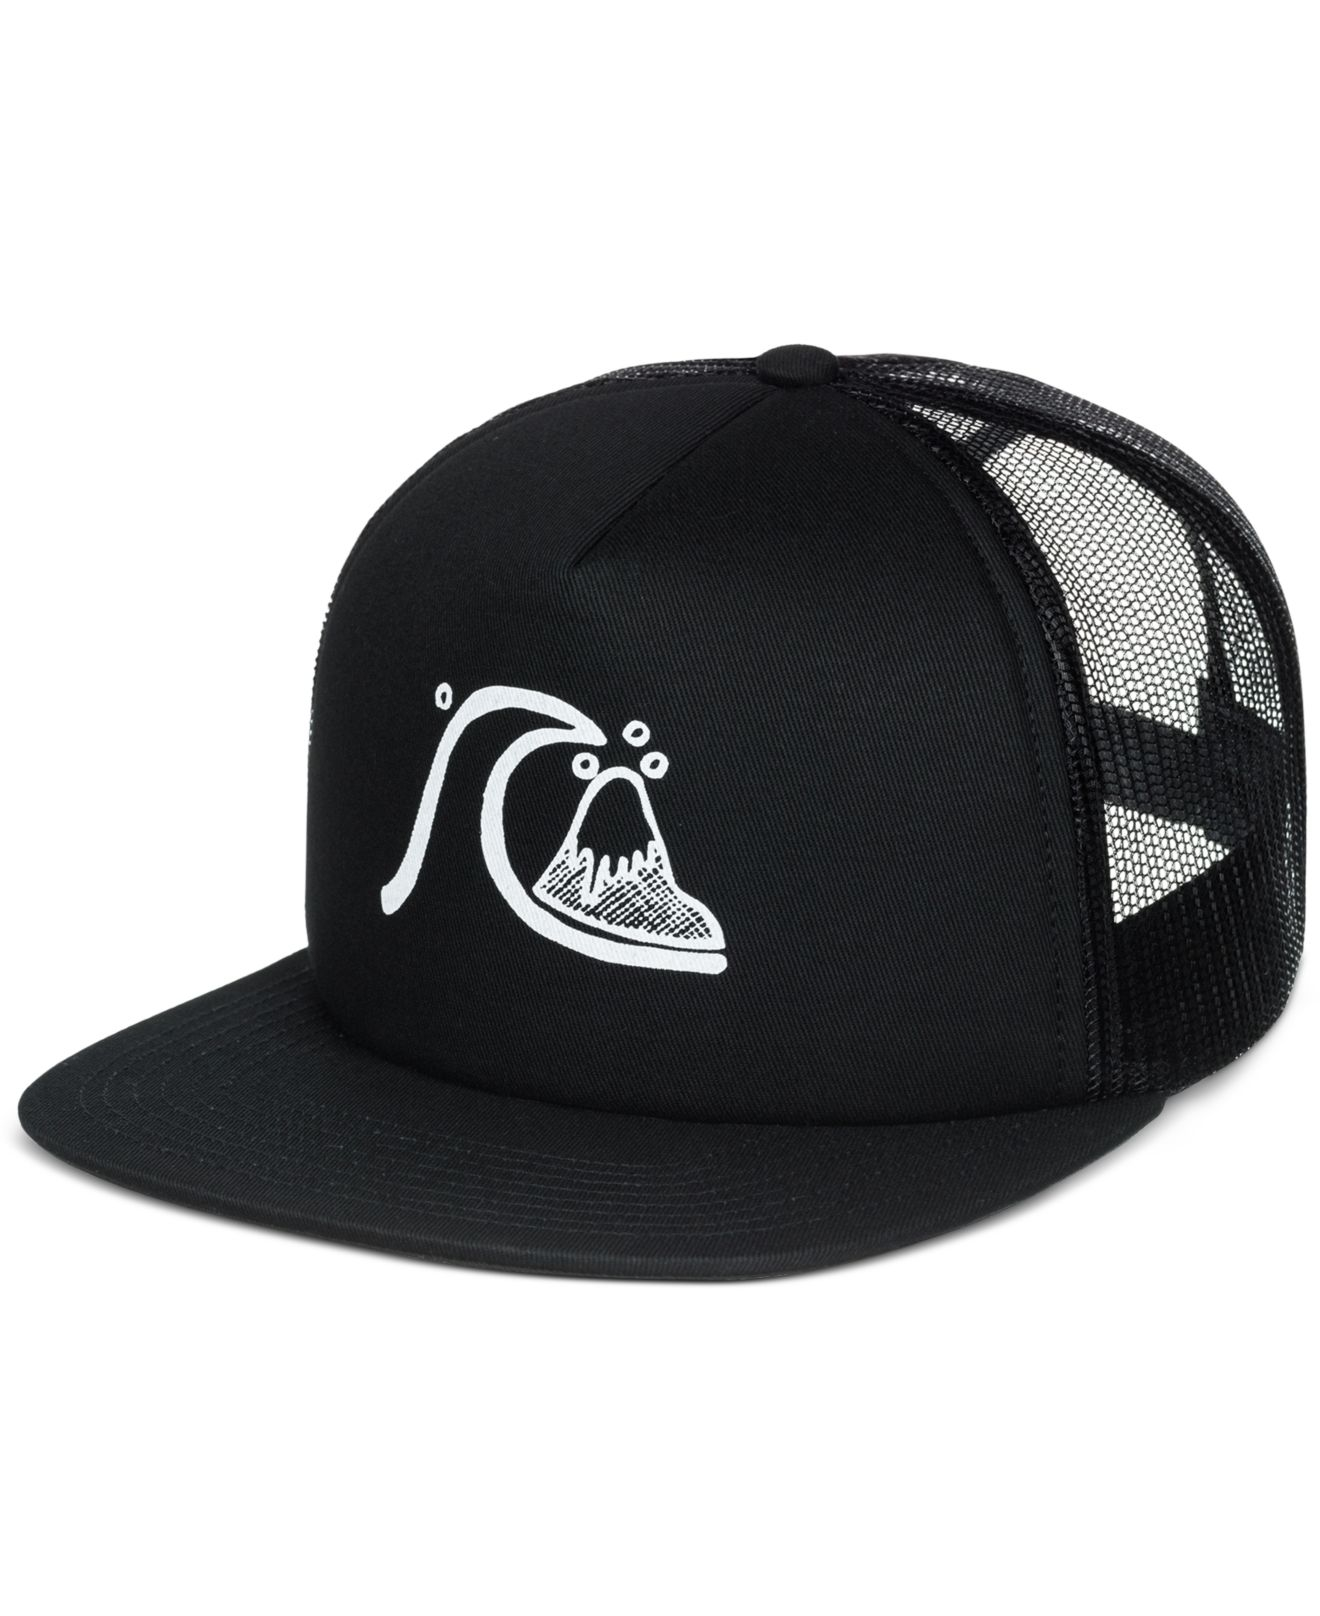 official photos 04140 411c6 ... promo code for lyst quiksilver quicksilver trucker hat in black for men  c0fac 958aa